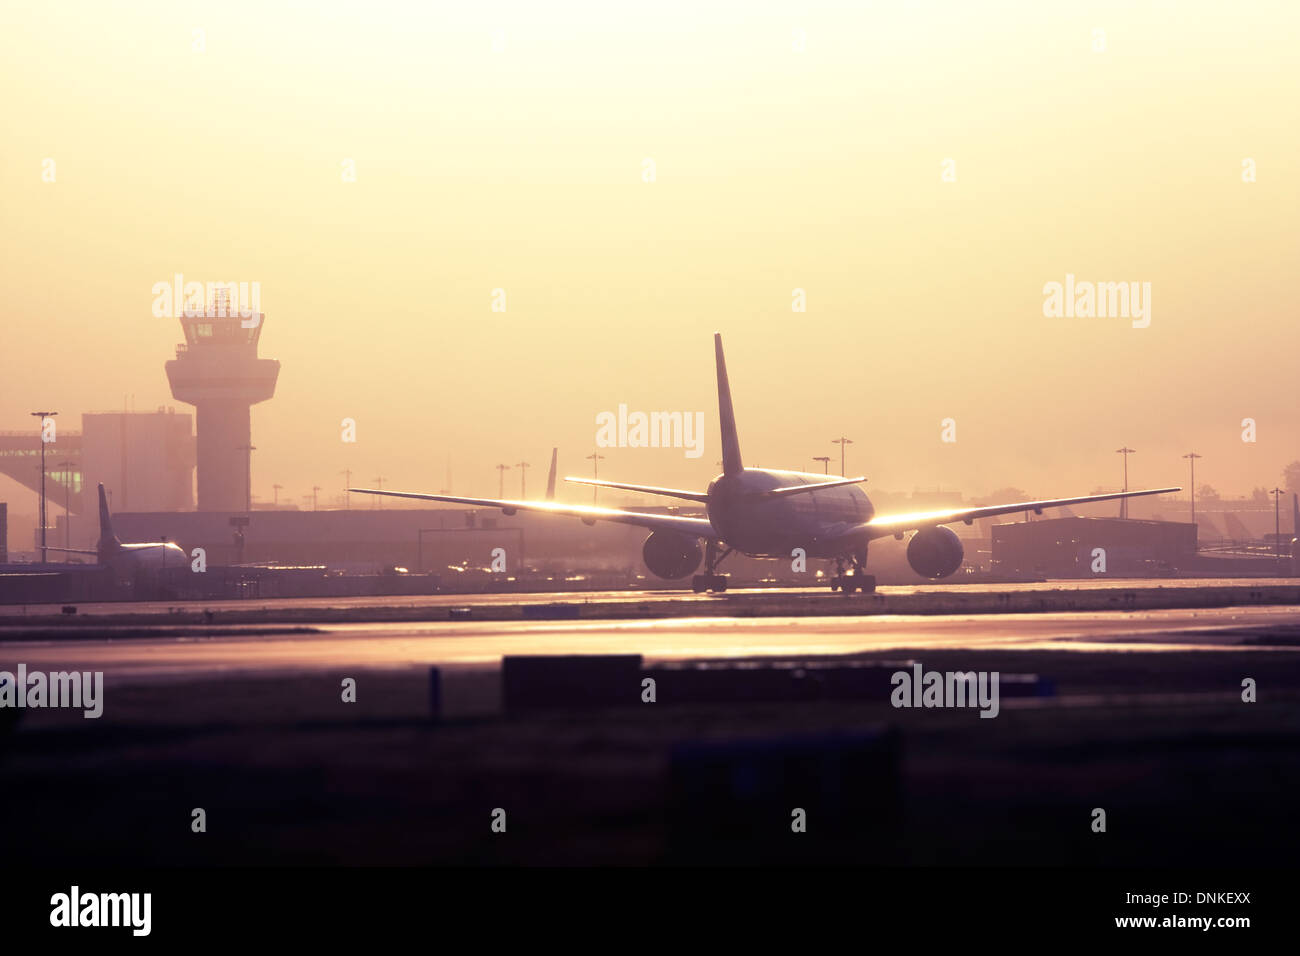 Commercial airliner taxiing at London Gatwick Airport, UK Stock Photo